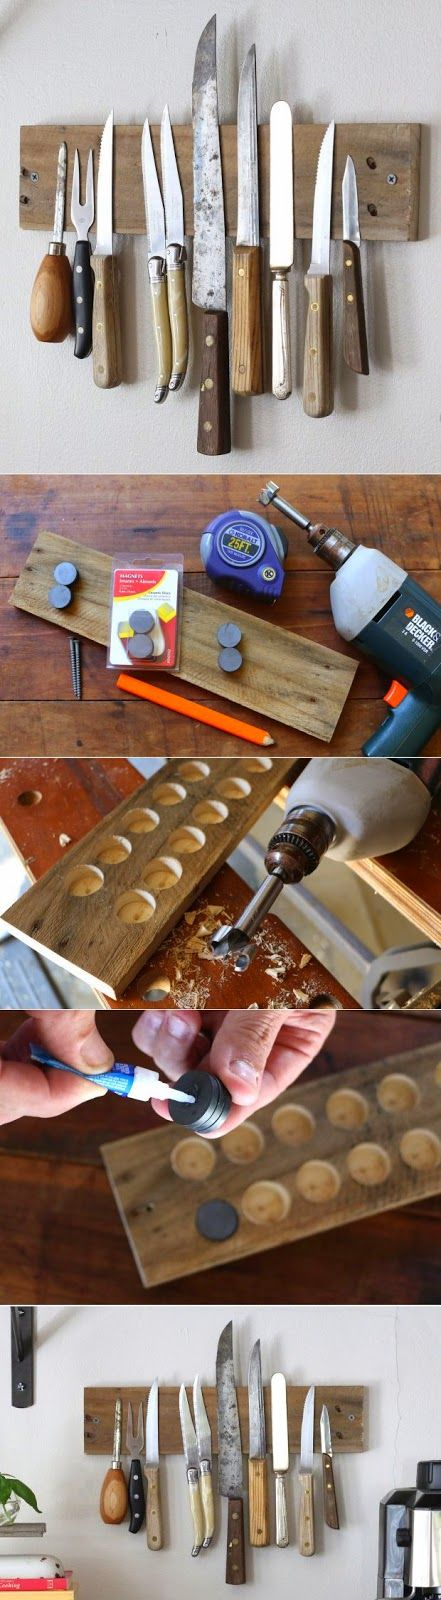 create your own rustic wall rack to display knives tutorial organize my life pinterest. Black Bedroom Furniture Sets. Home Design Ideas